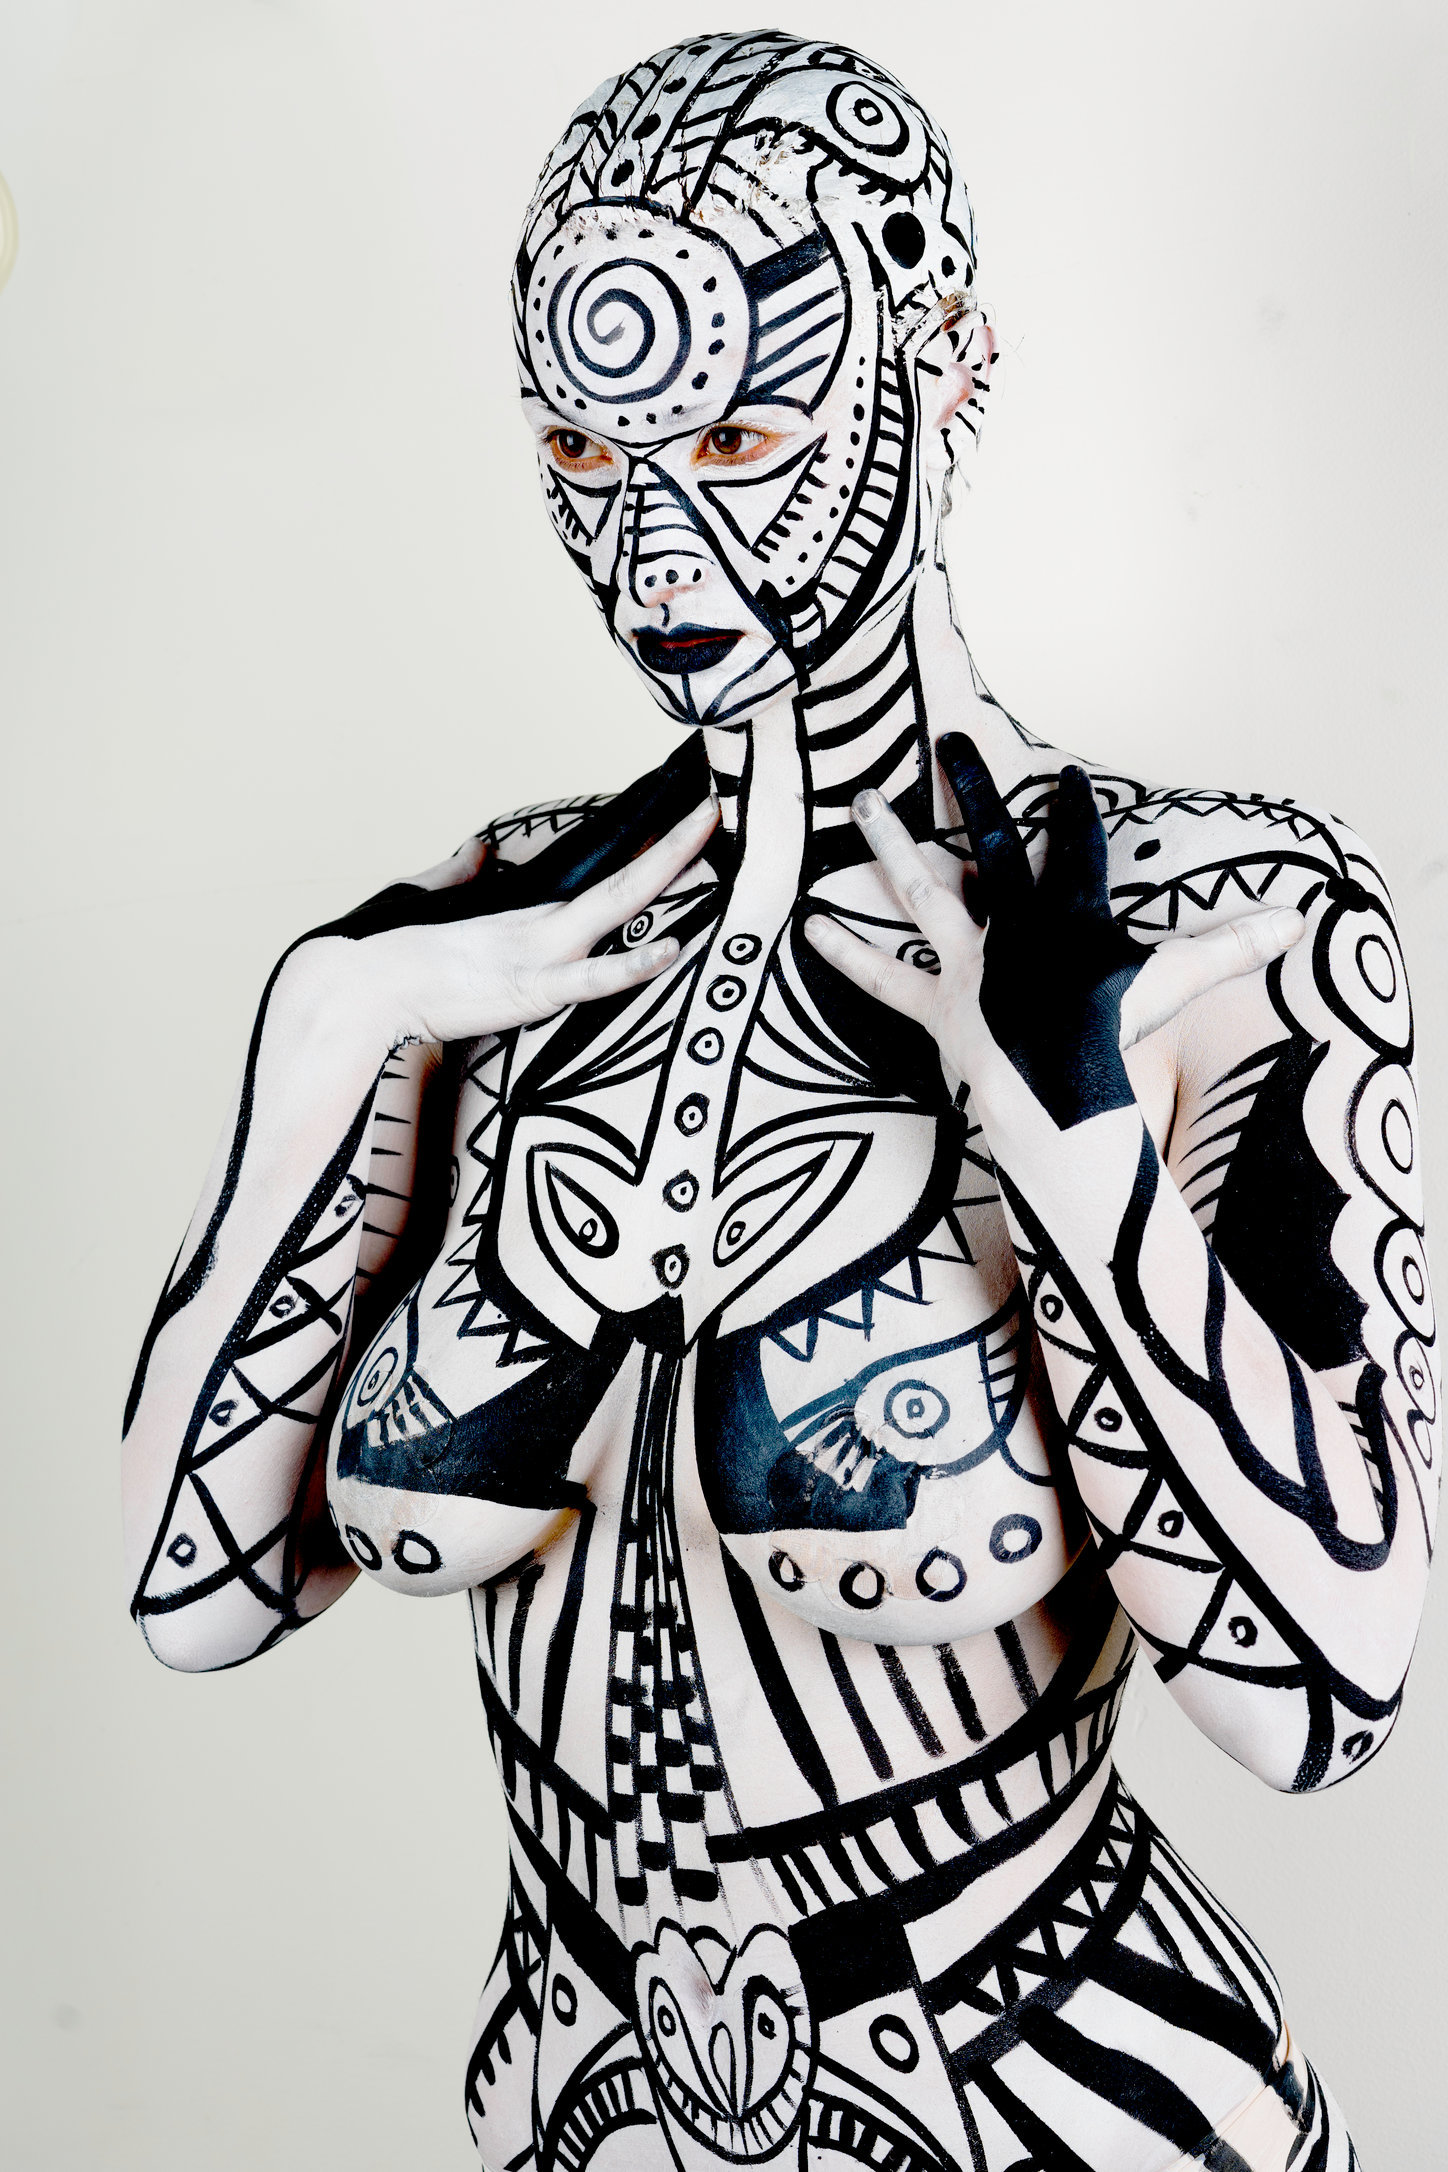 BodyPaint-249-Edit.jpg